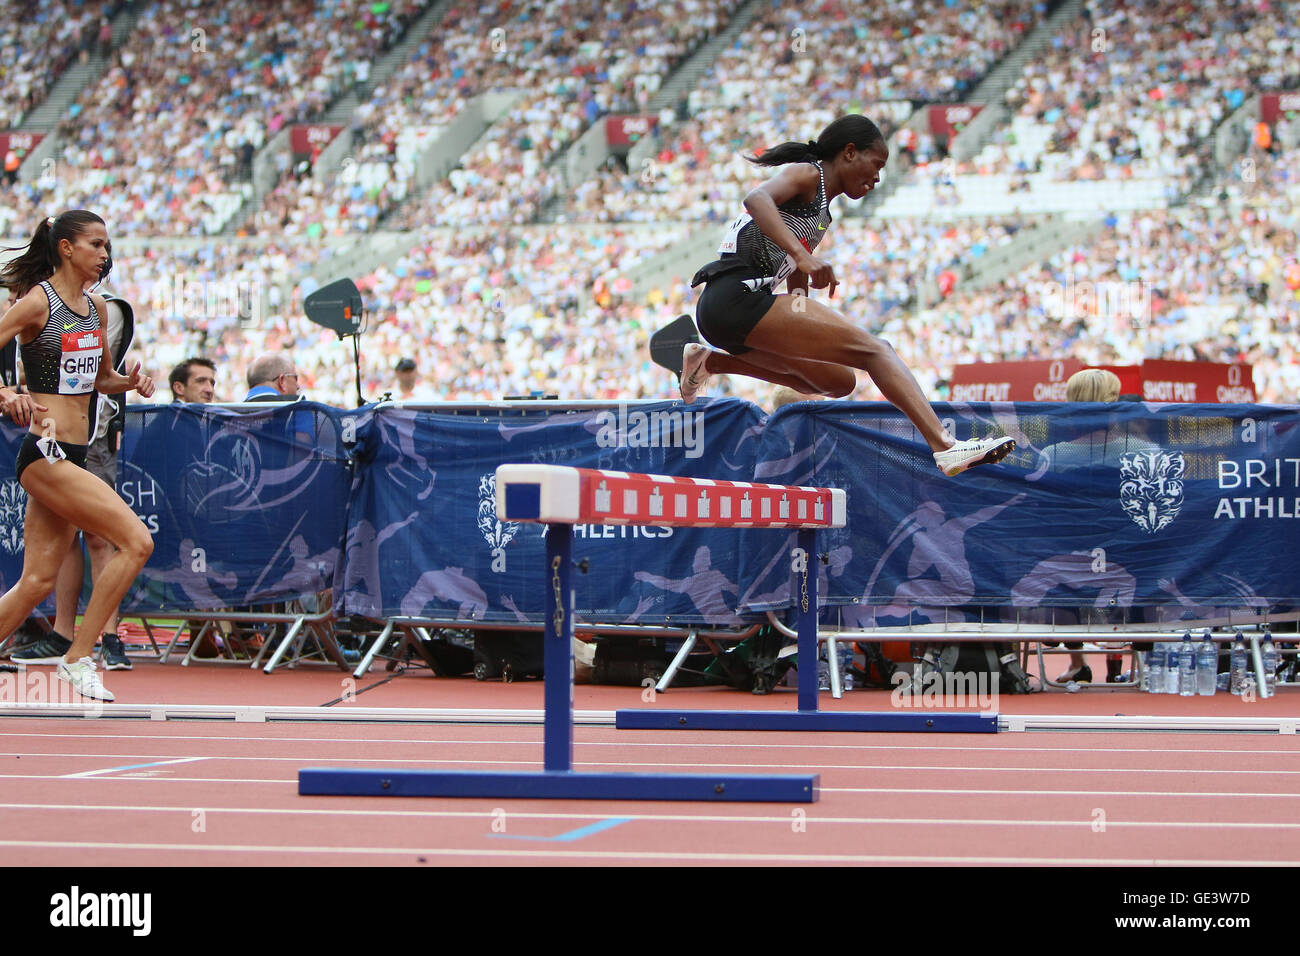 London, UK. 23rd July 2016. London, UK. IAAF Diamond Leauge Anniversary Games. Habiba Ghribi takes first place in - Stock Image